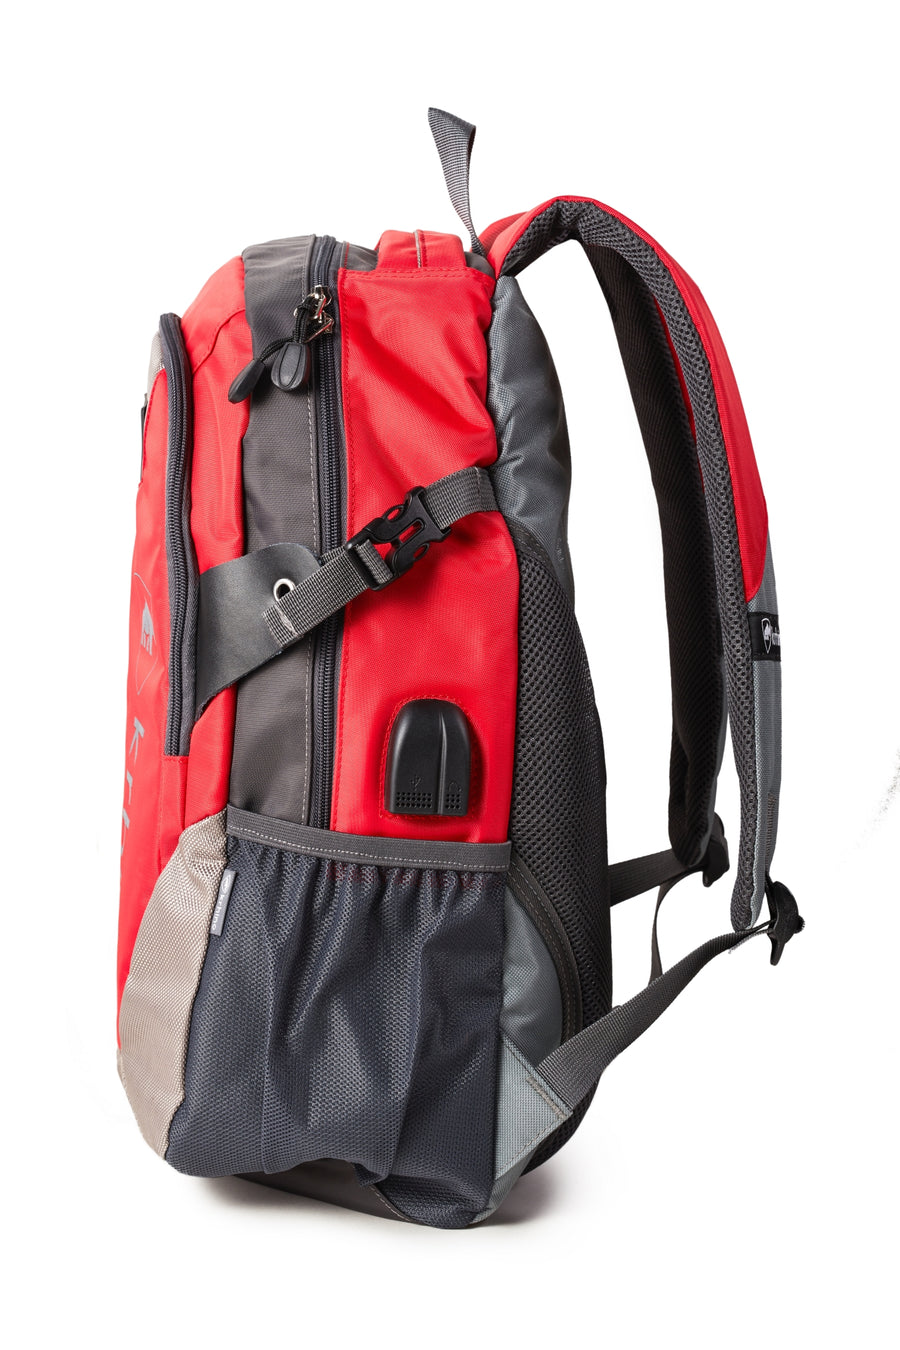 Krhino Titan Bulletproof Red - Krhino Ballistic Backpack Bulletproof backpack